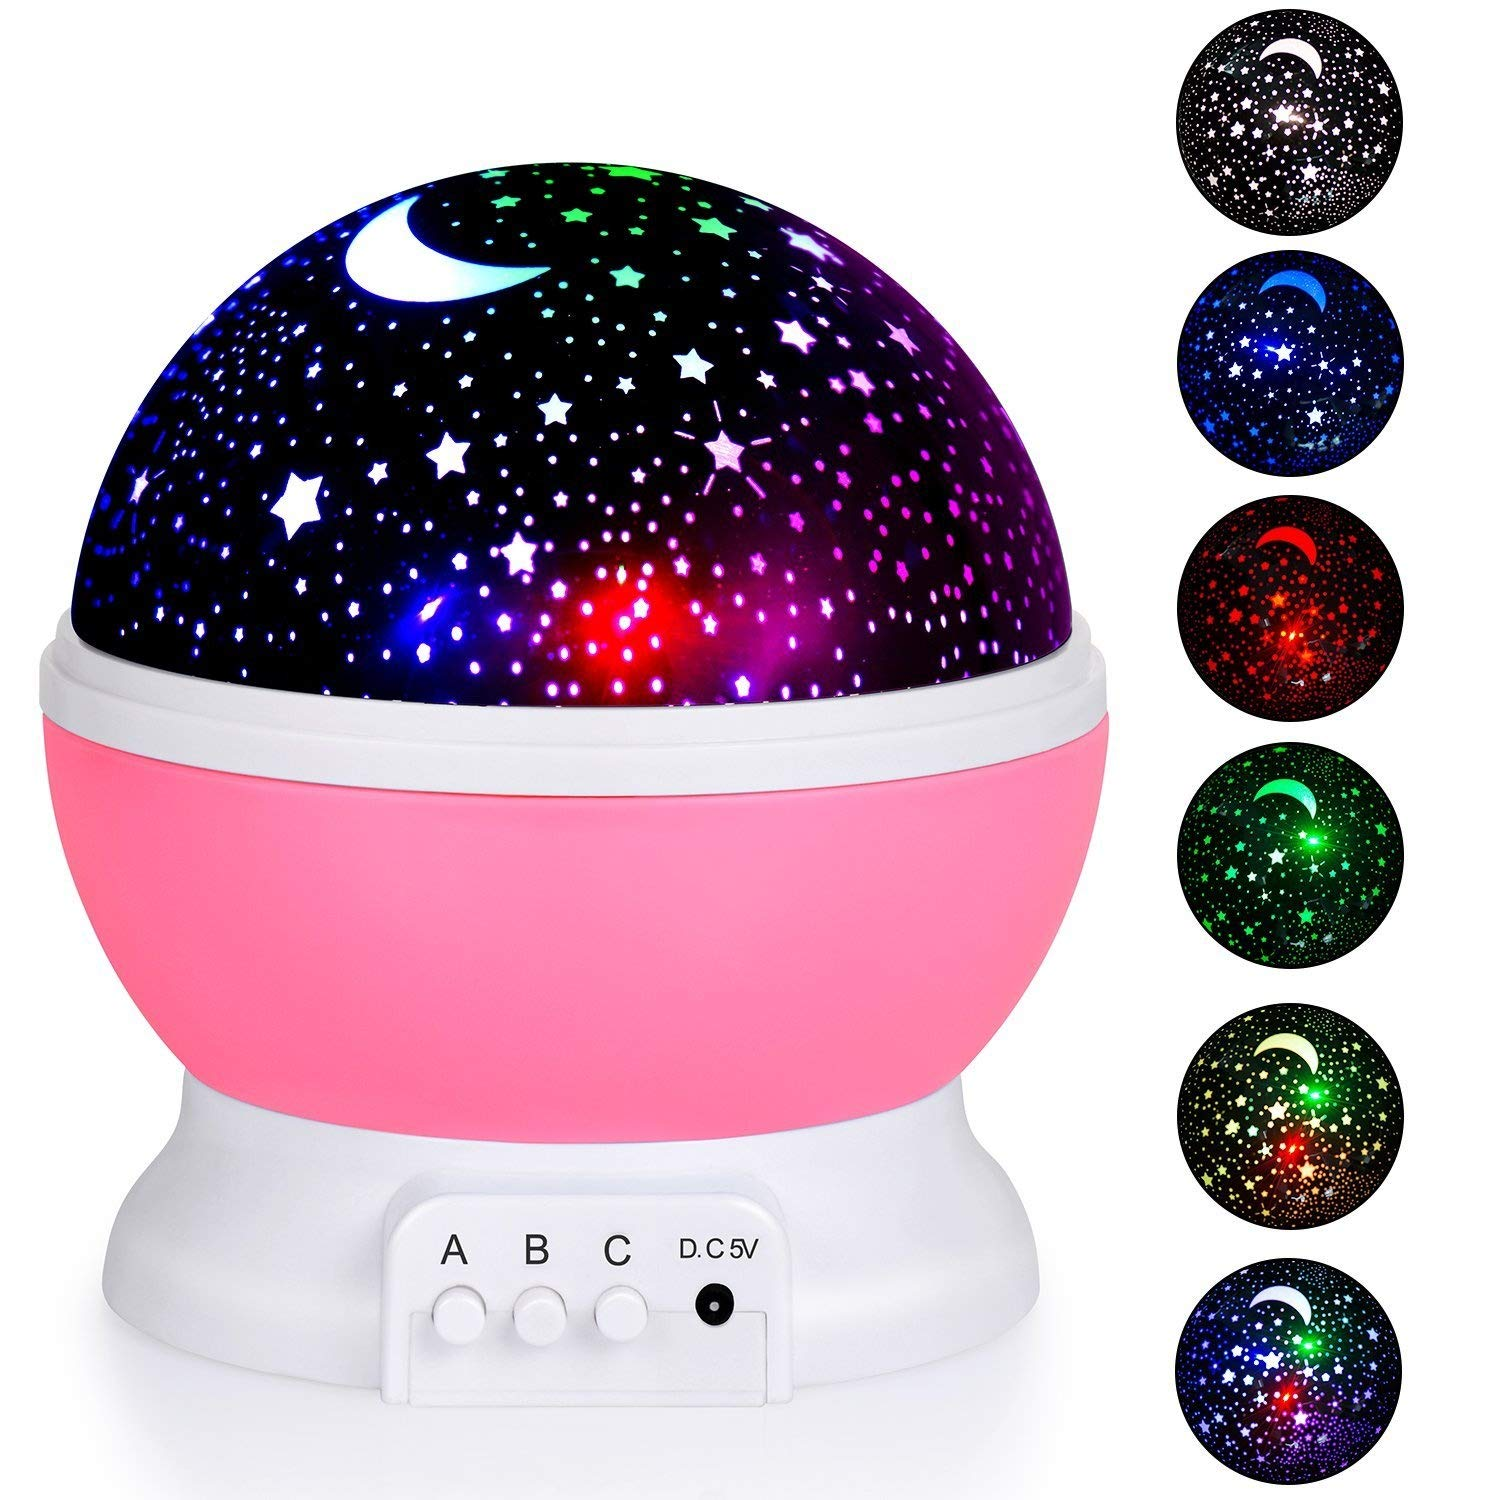 Stripsun Star Night Light Projector, Baby Night Lights with 8 Colors & 4 LED Heads, 360 Degree Rotating Star Projector for Kids, Children Bedroom